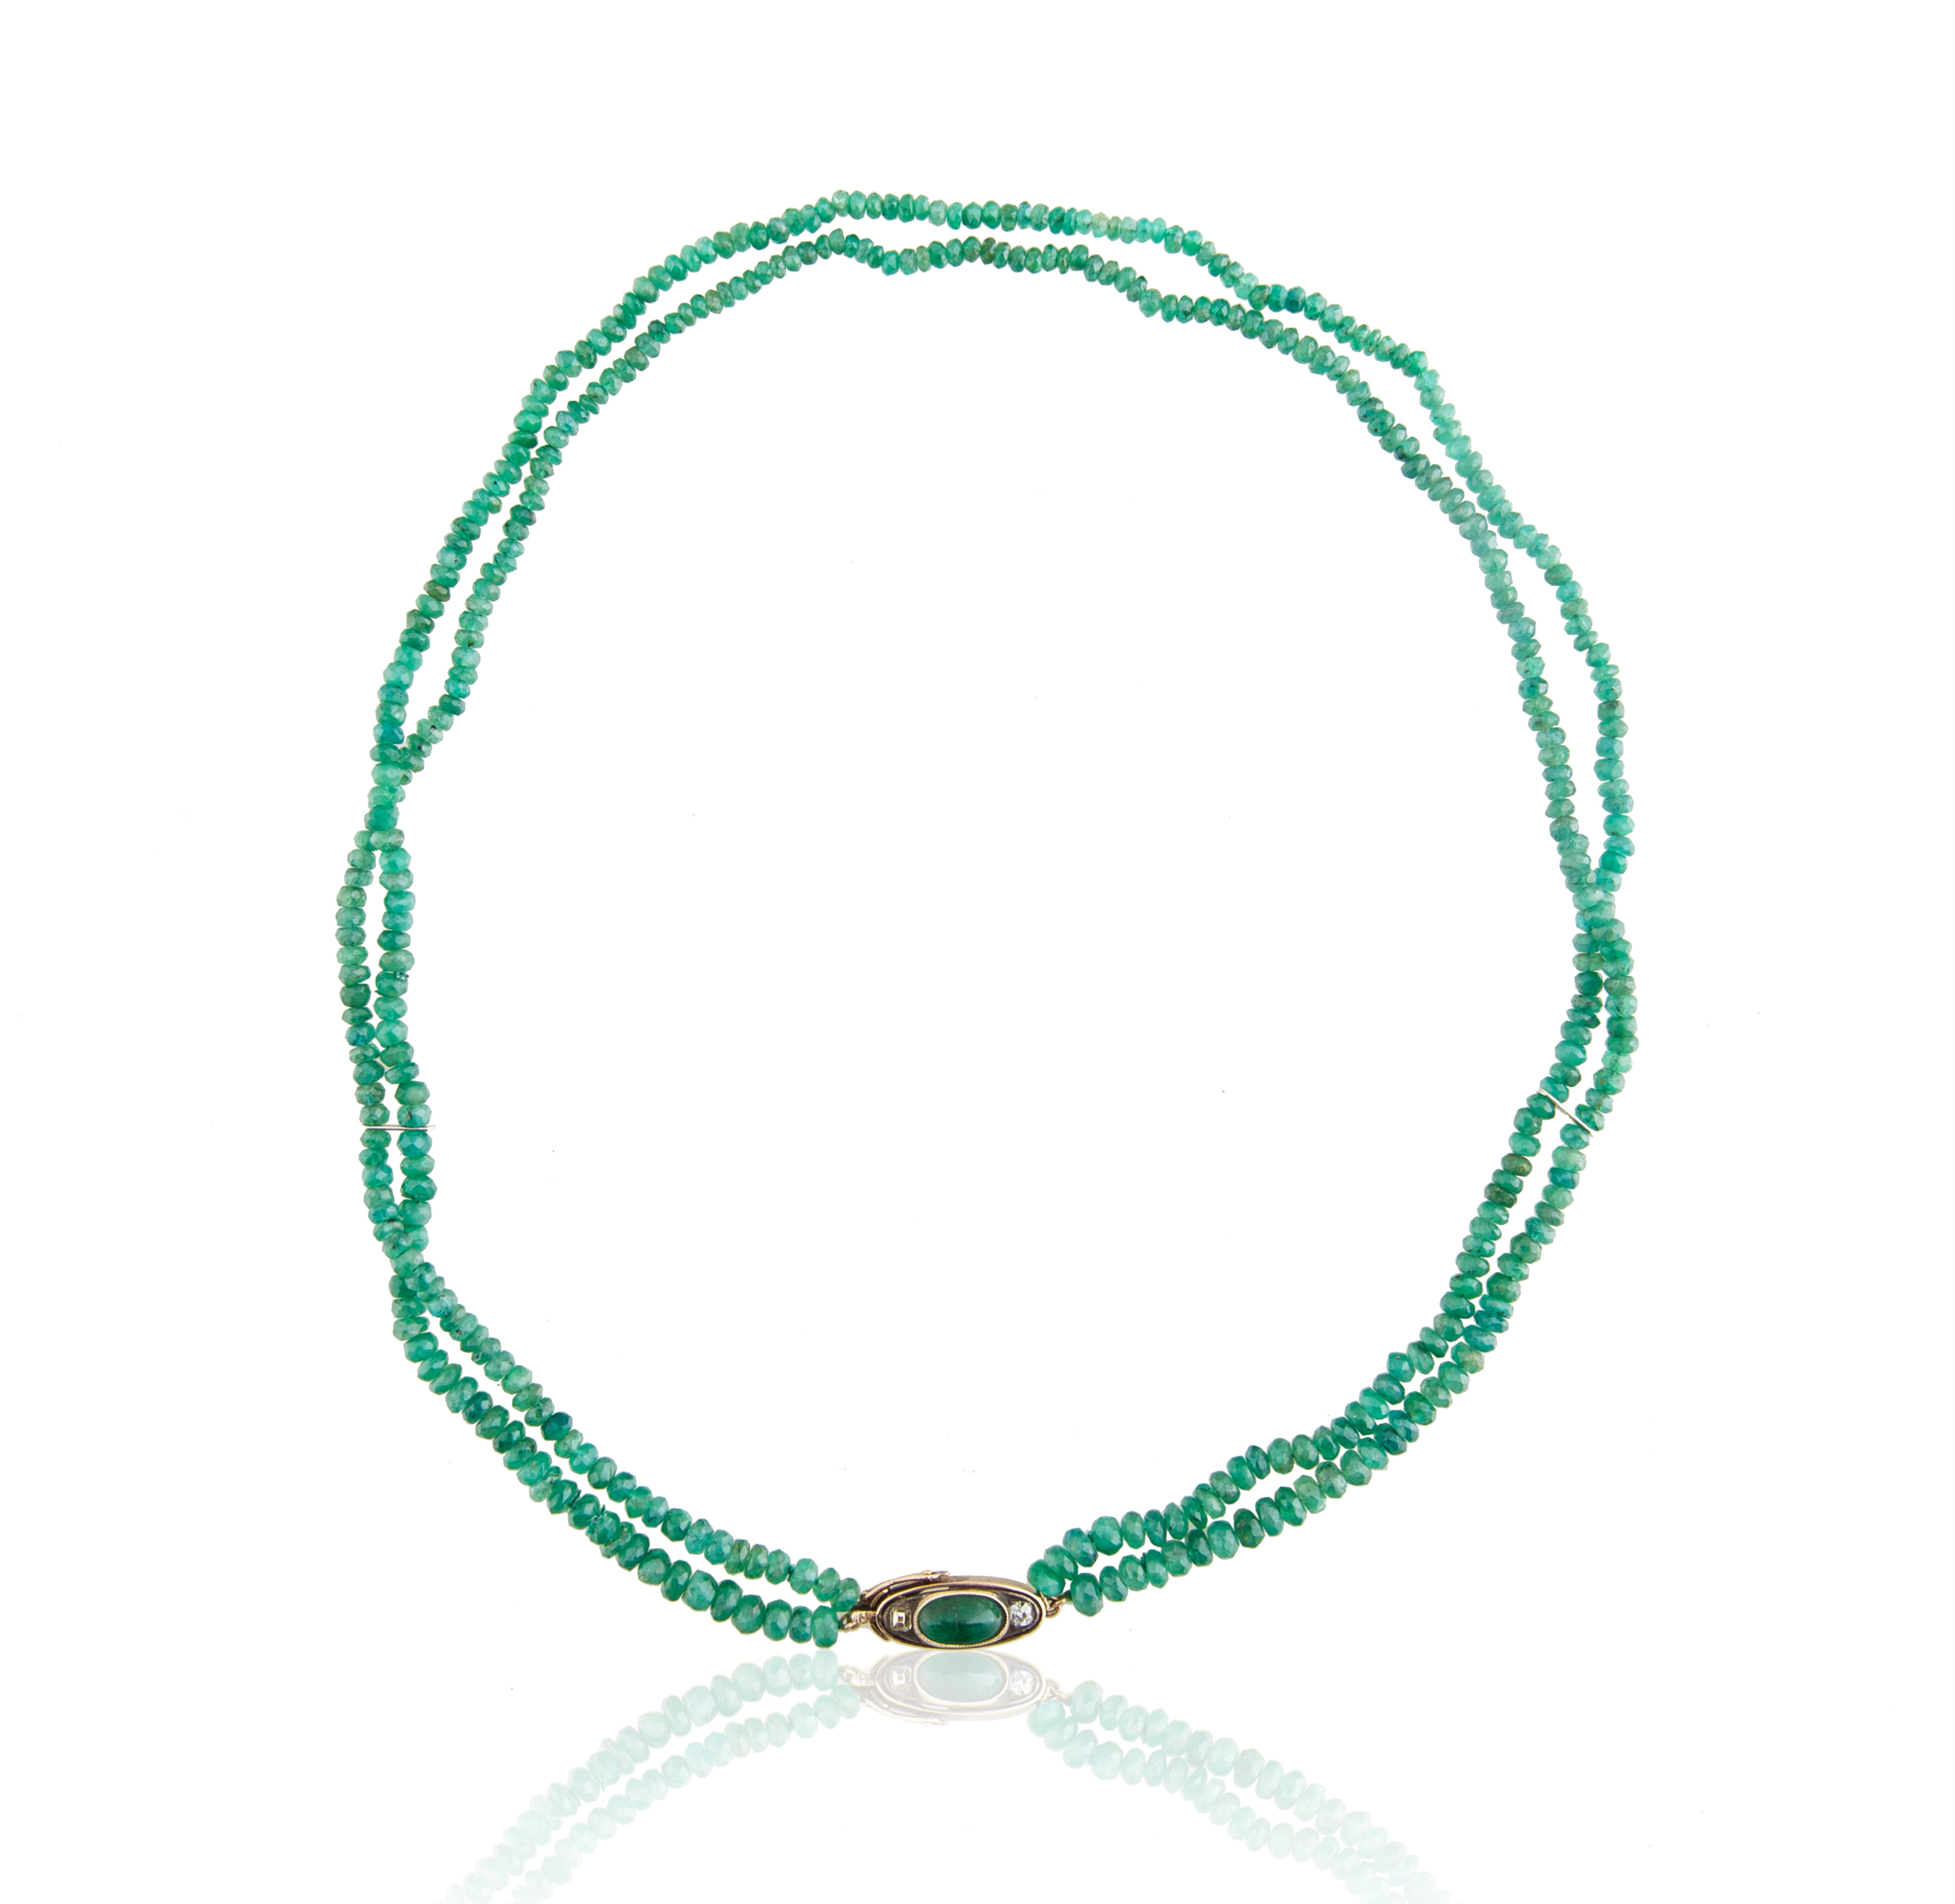 AN EMERALD, DIAMOND AND JADEITE BEADED NECKLACE, LIKELY FRENCH